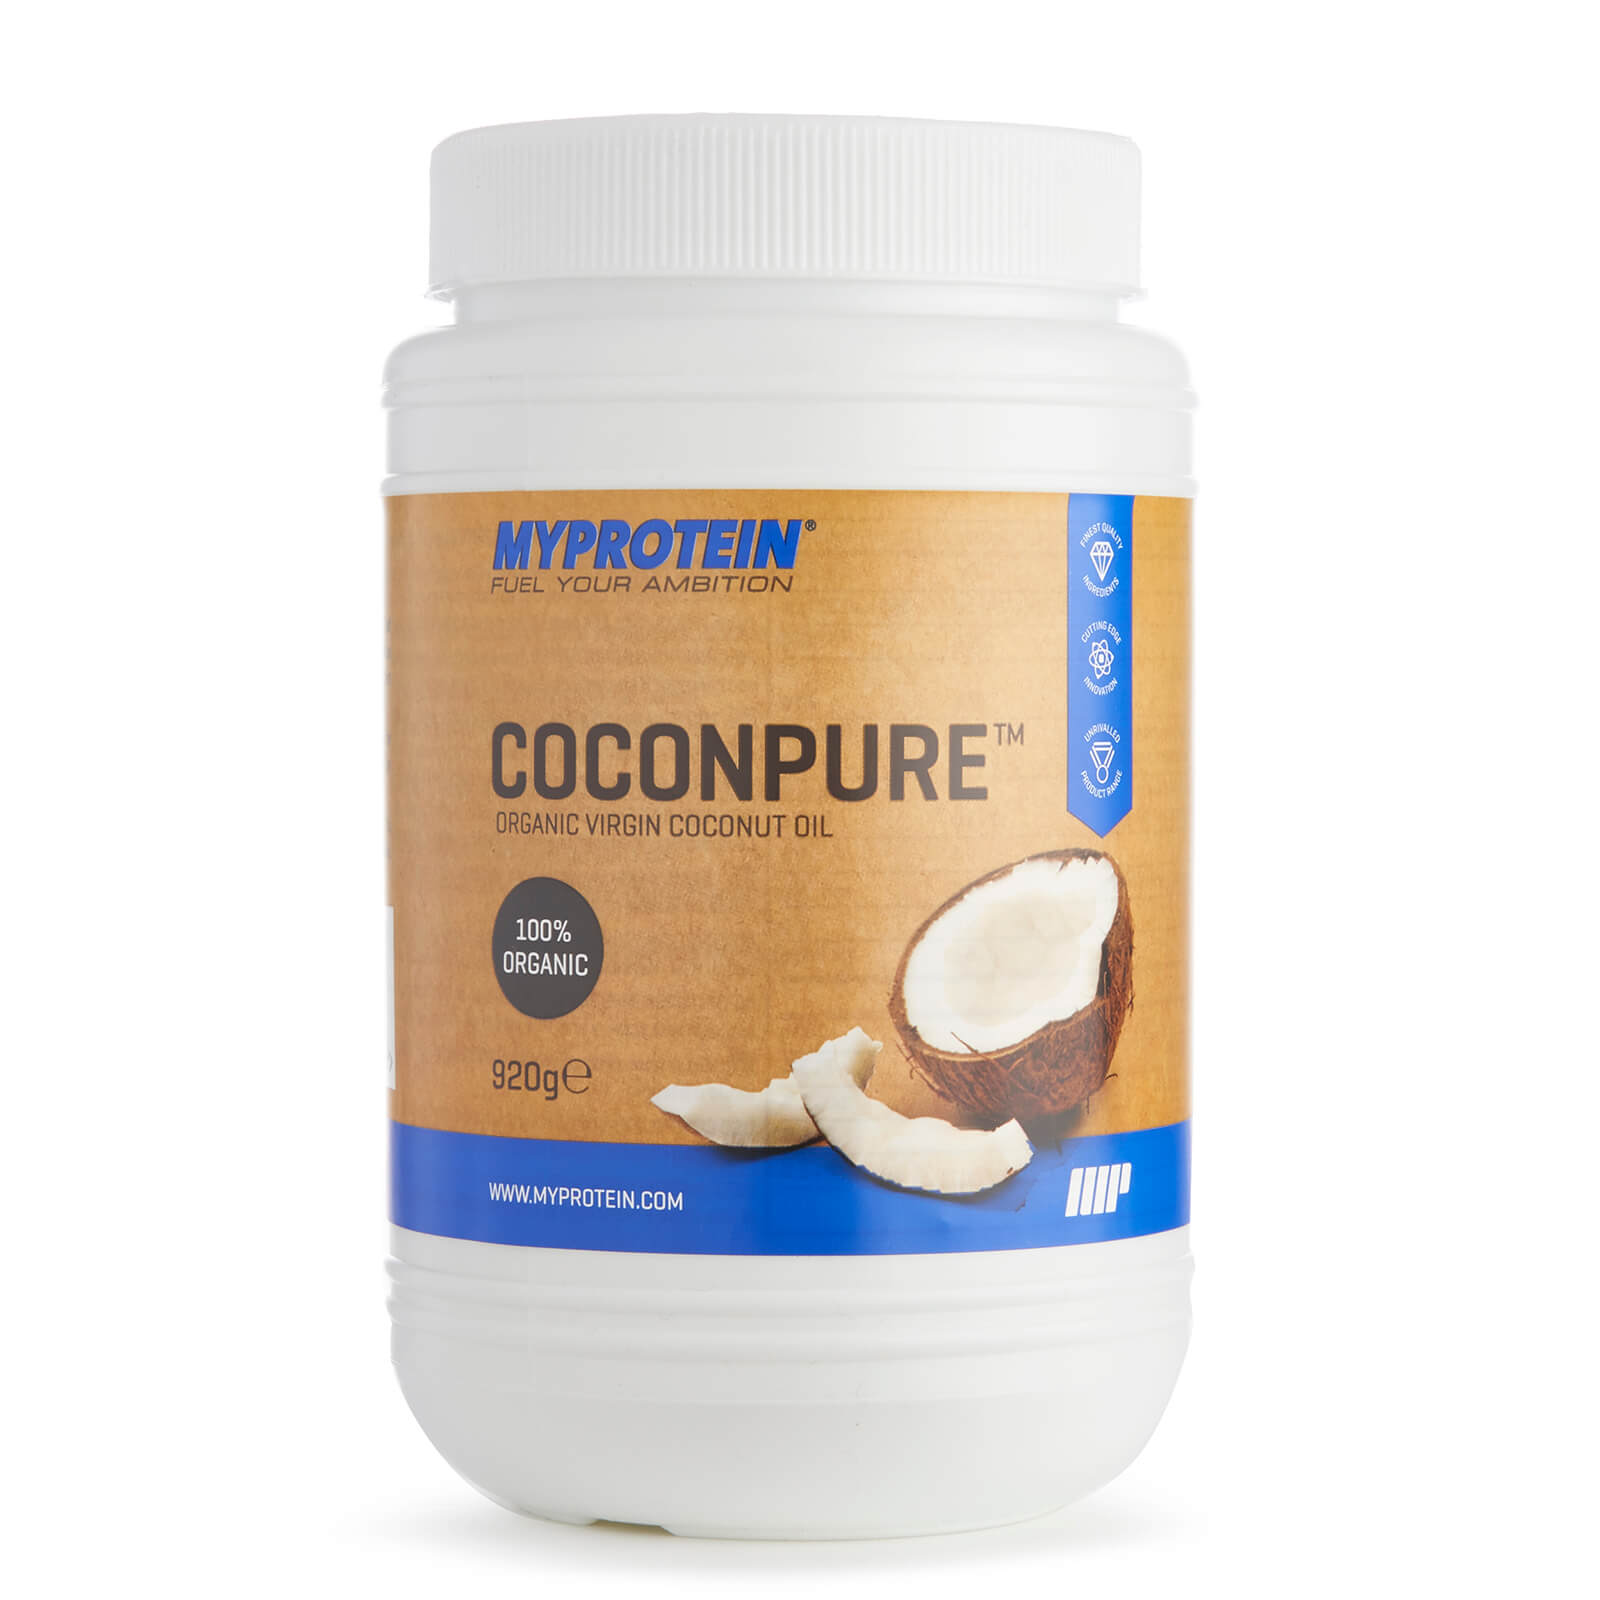 Coconpure (Coconut Oil) - Unflavoured - 460g